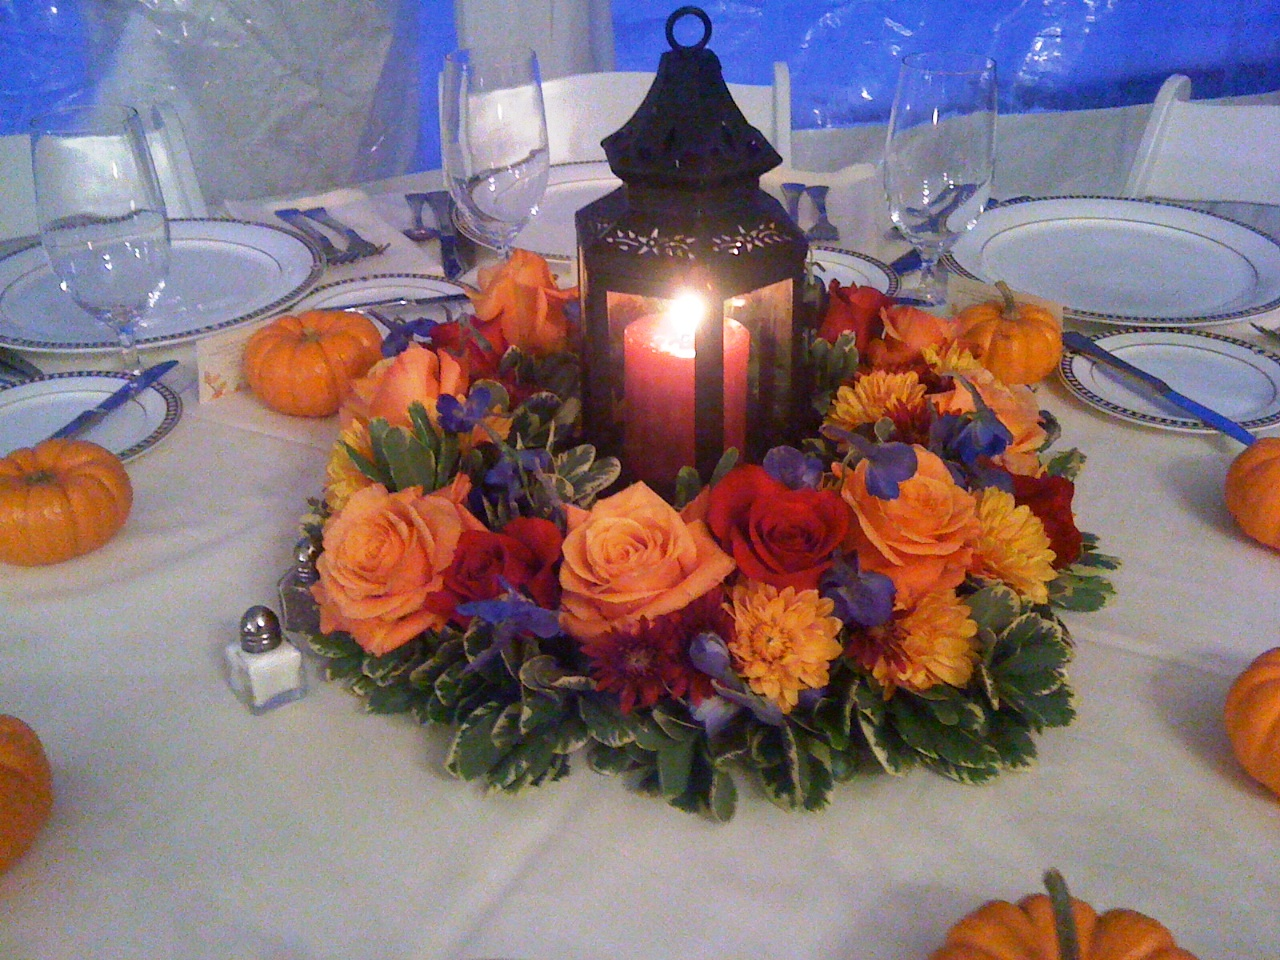 Ideas For Fall Wedding Centerpieces: Fall Lantern Centerpiece